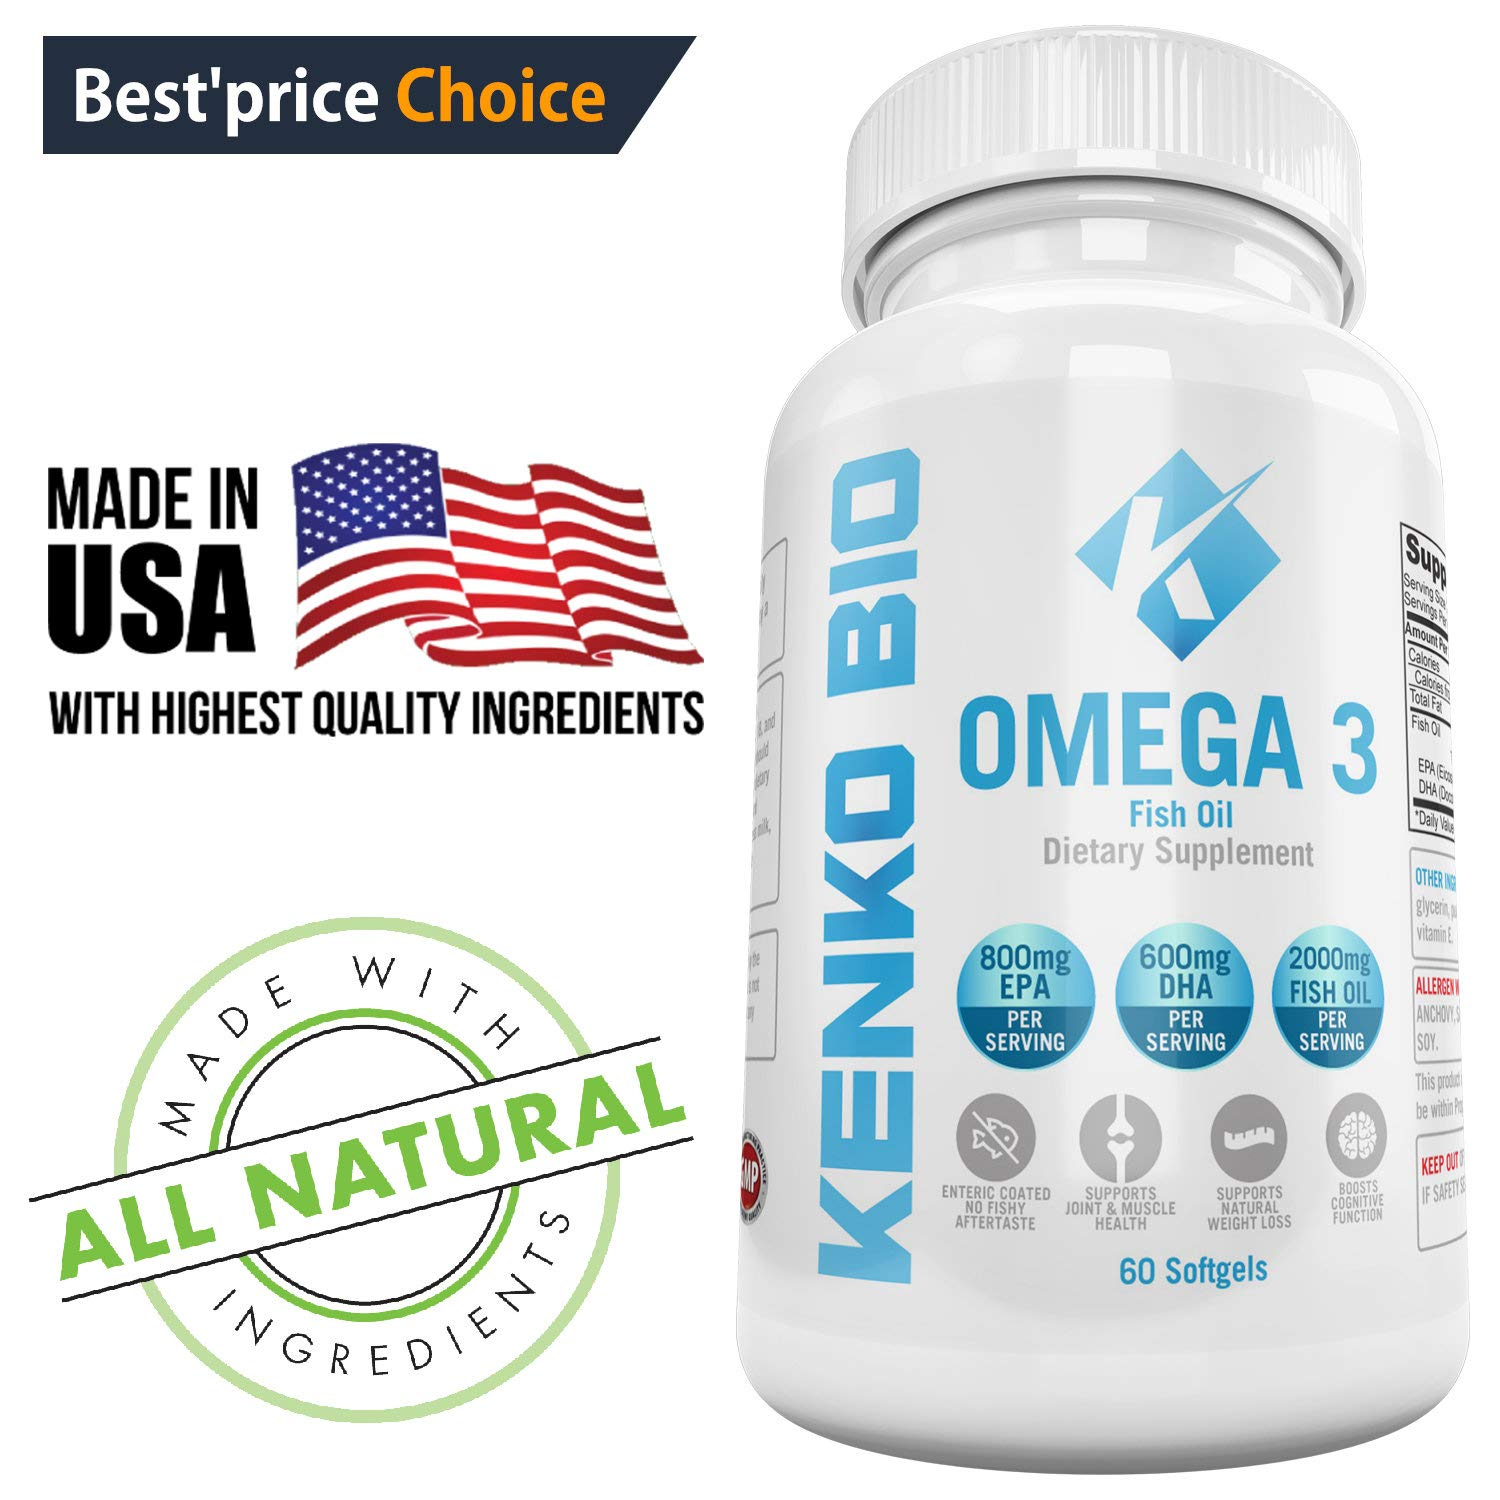 Premium Omega 3 Fish Oil Supplements 2000 mg Serving Softgel Capsules Best Source of Pure 800 mg EPA 600 mg DHA Fatty Acids, No Aftertaste NON-GMO, NSF Certified Kenko Bio